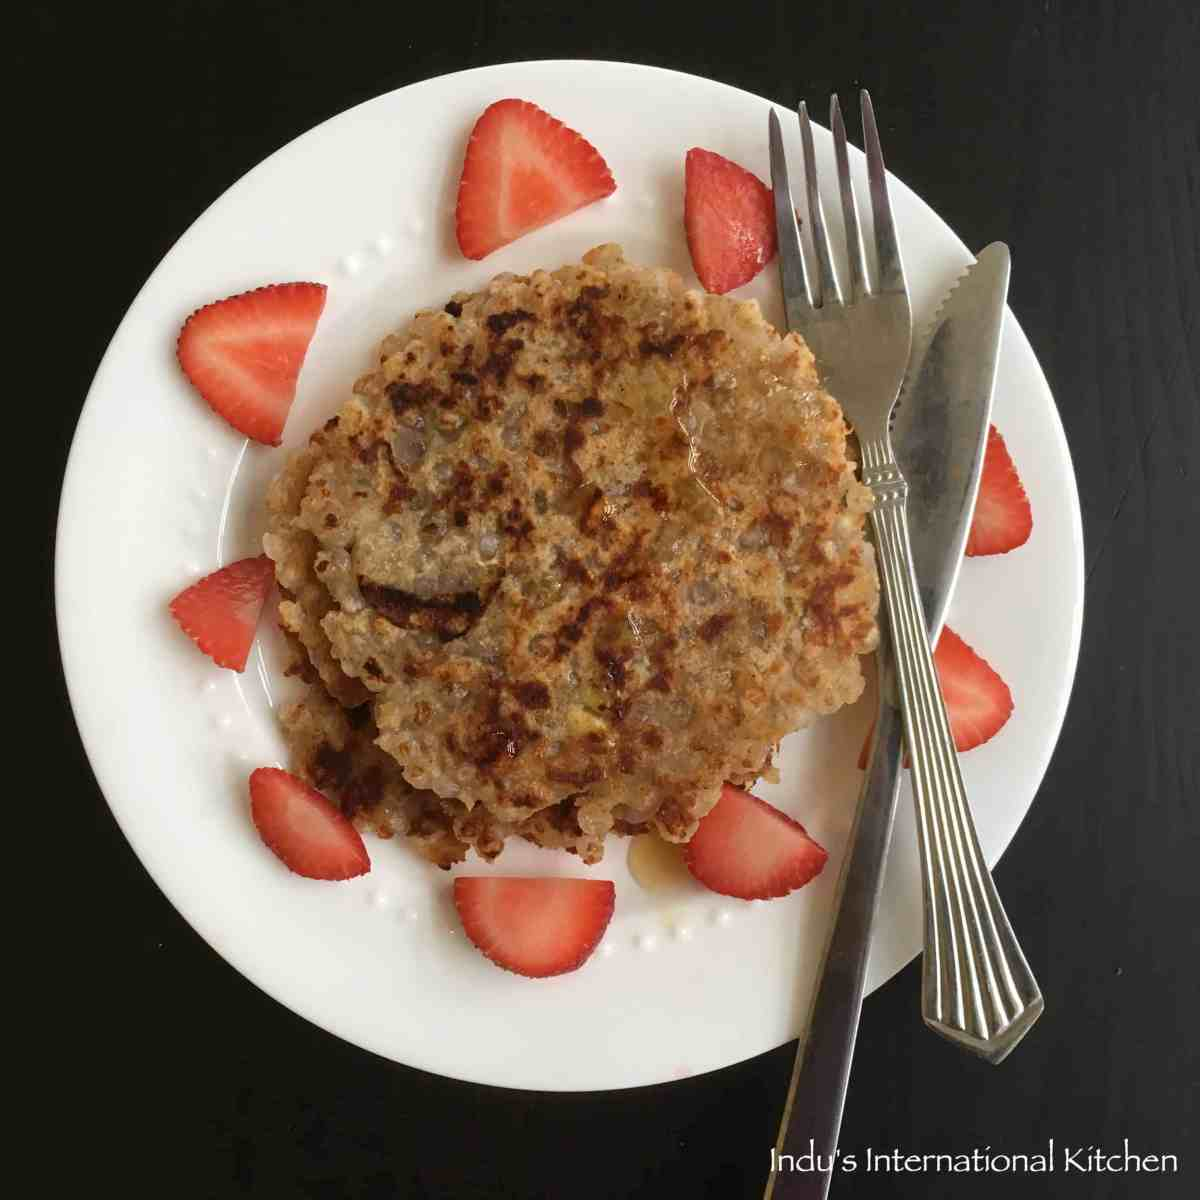 Sweet Potato and Tapioca Pearls Pancake (Paleo, AIP)